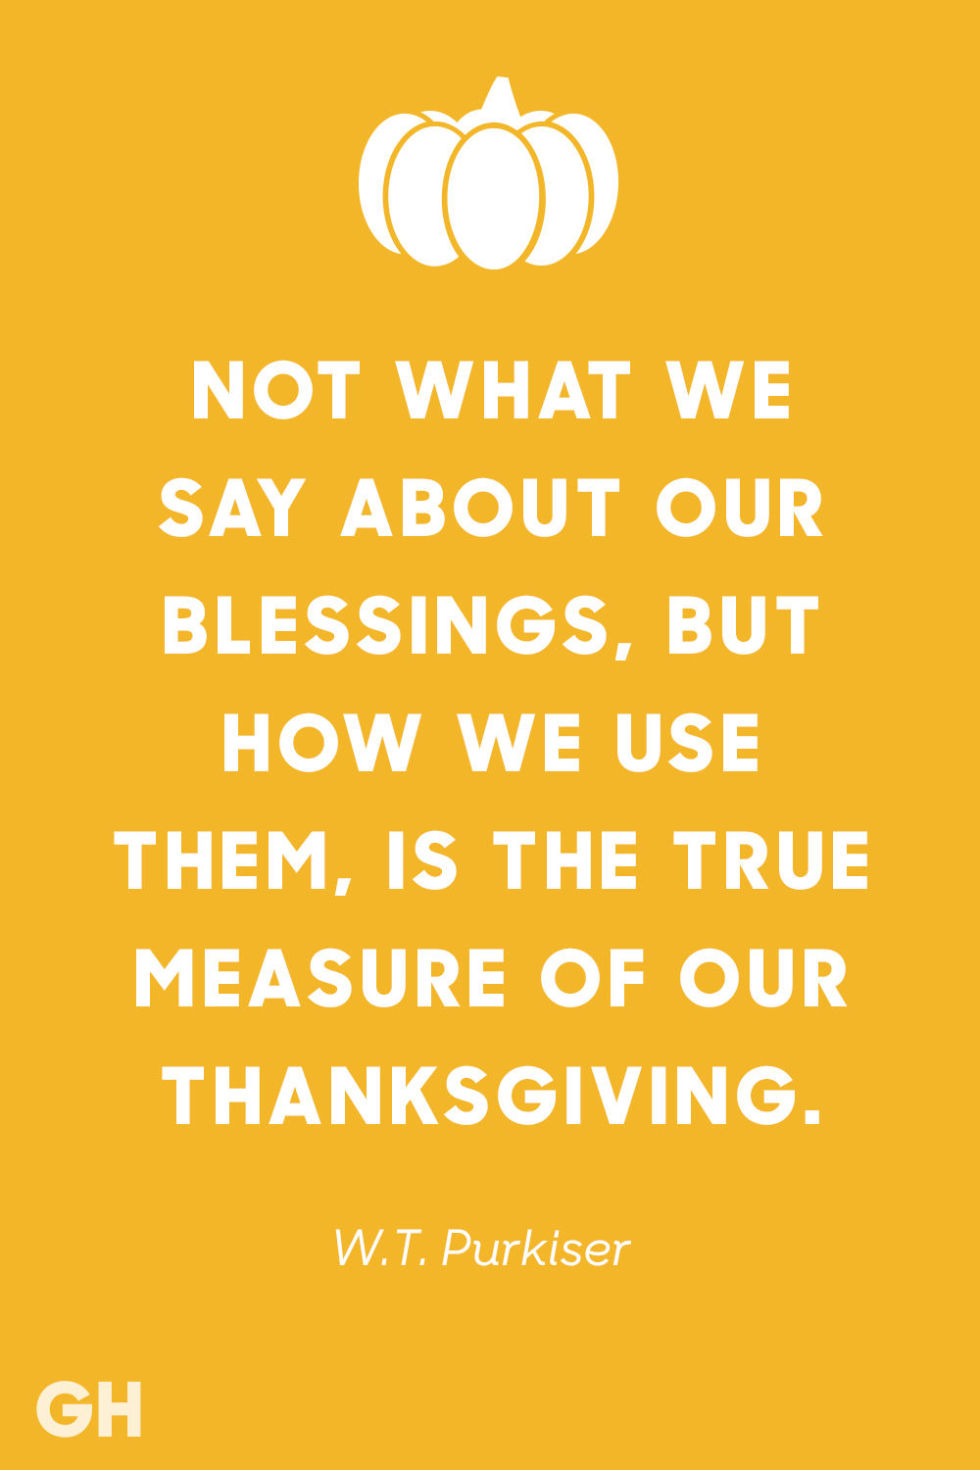 Thanksgiving Inspirational Quotes 15 Best Thanksgiving Quotes  Inspirational And Funny Quotes About .